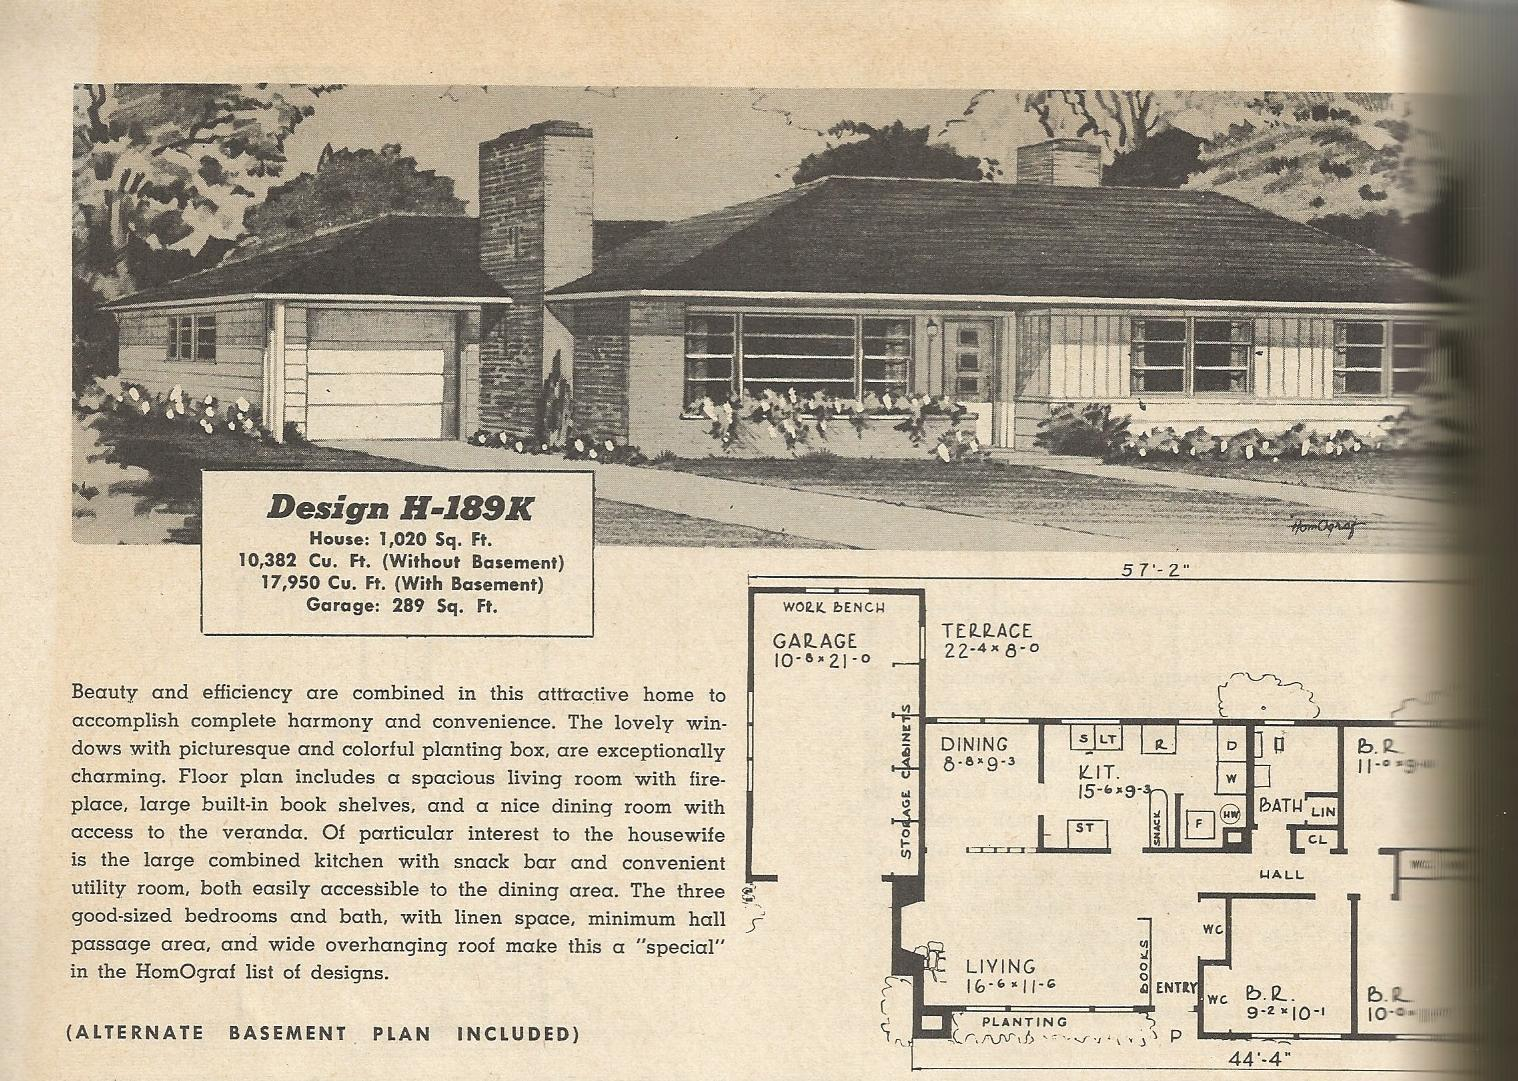 vintage house plans 189?w=300&h=213 vintage house plans 1950s two story, 1 1 2 story and ramblers,House Plans 1950s